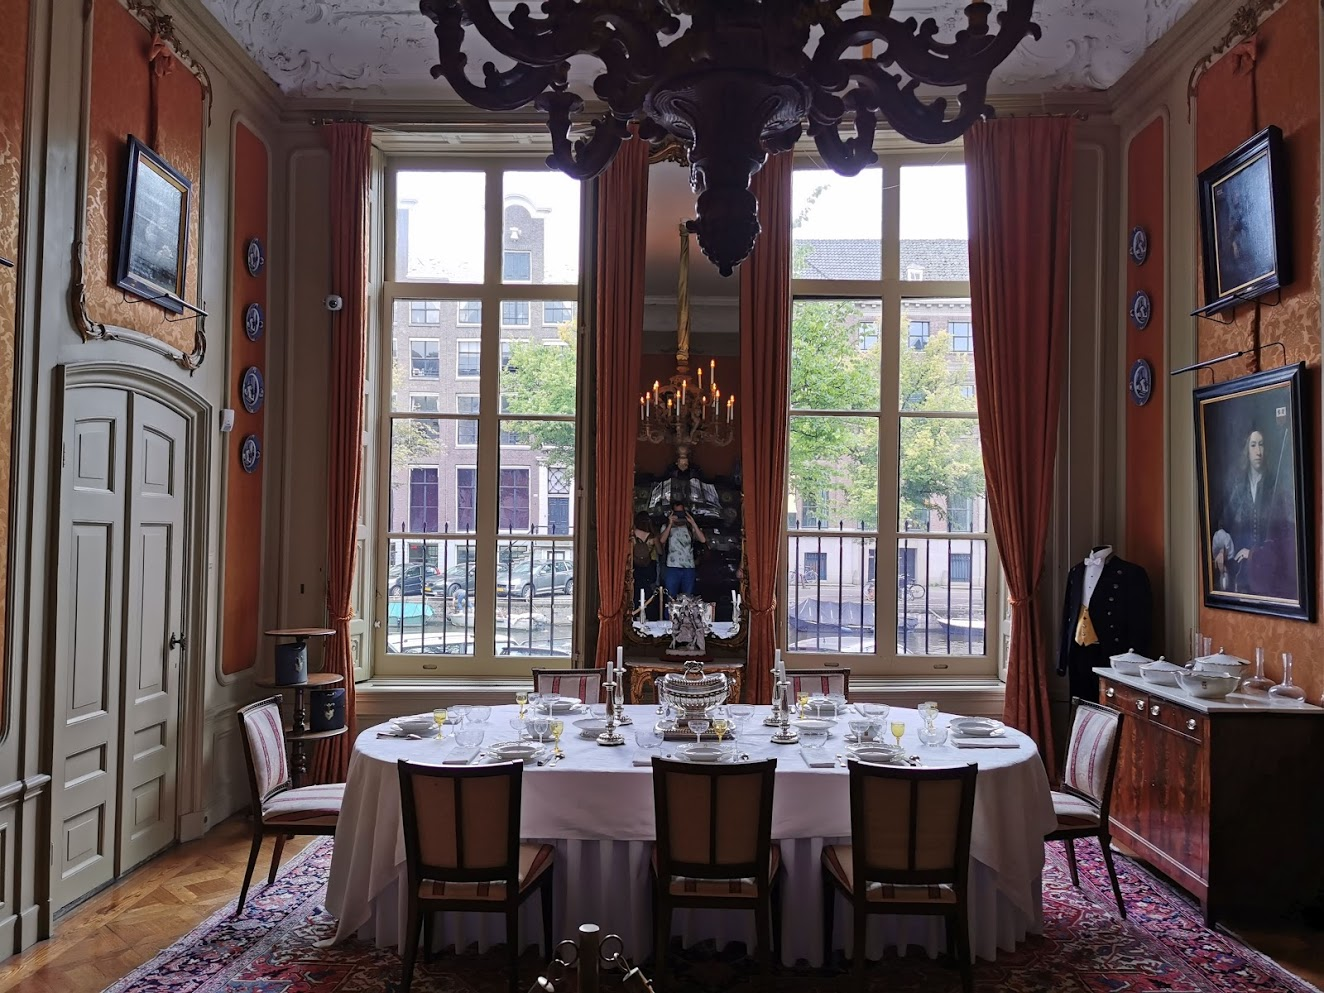 Museum van Loon dining room